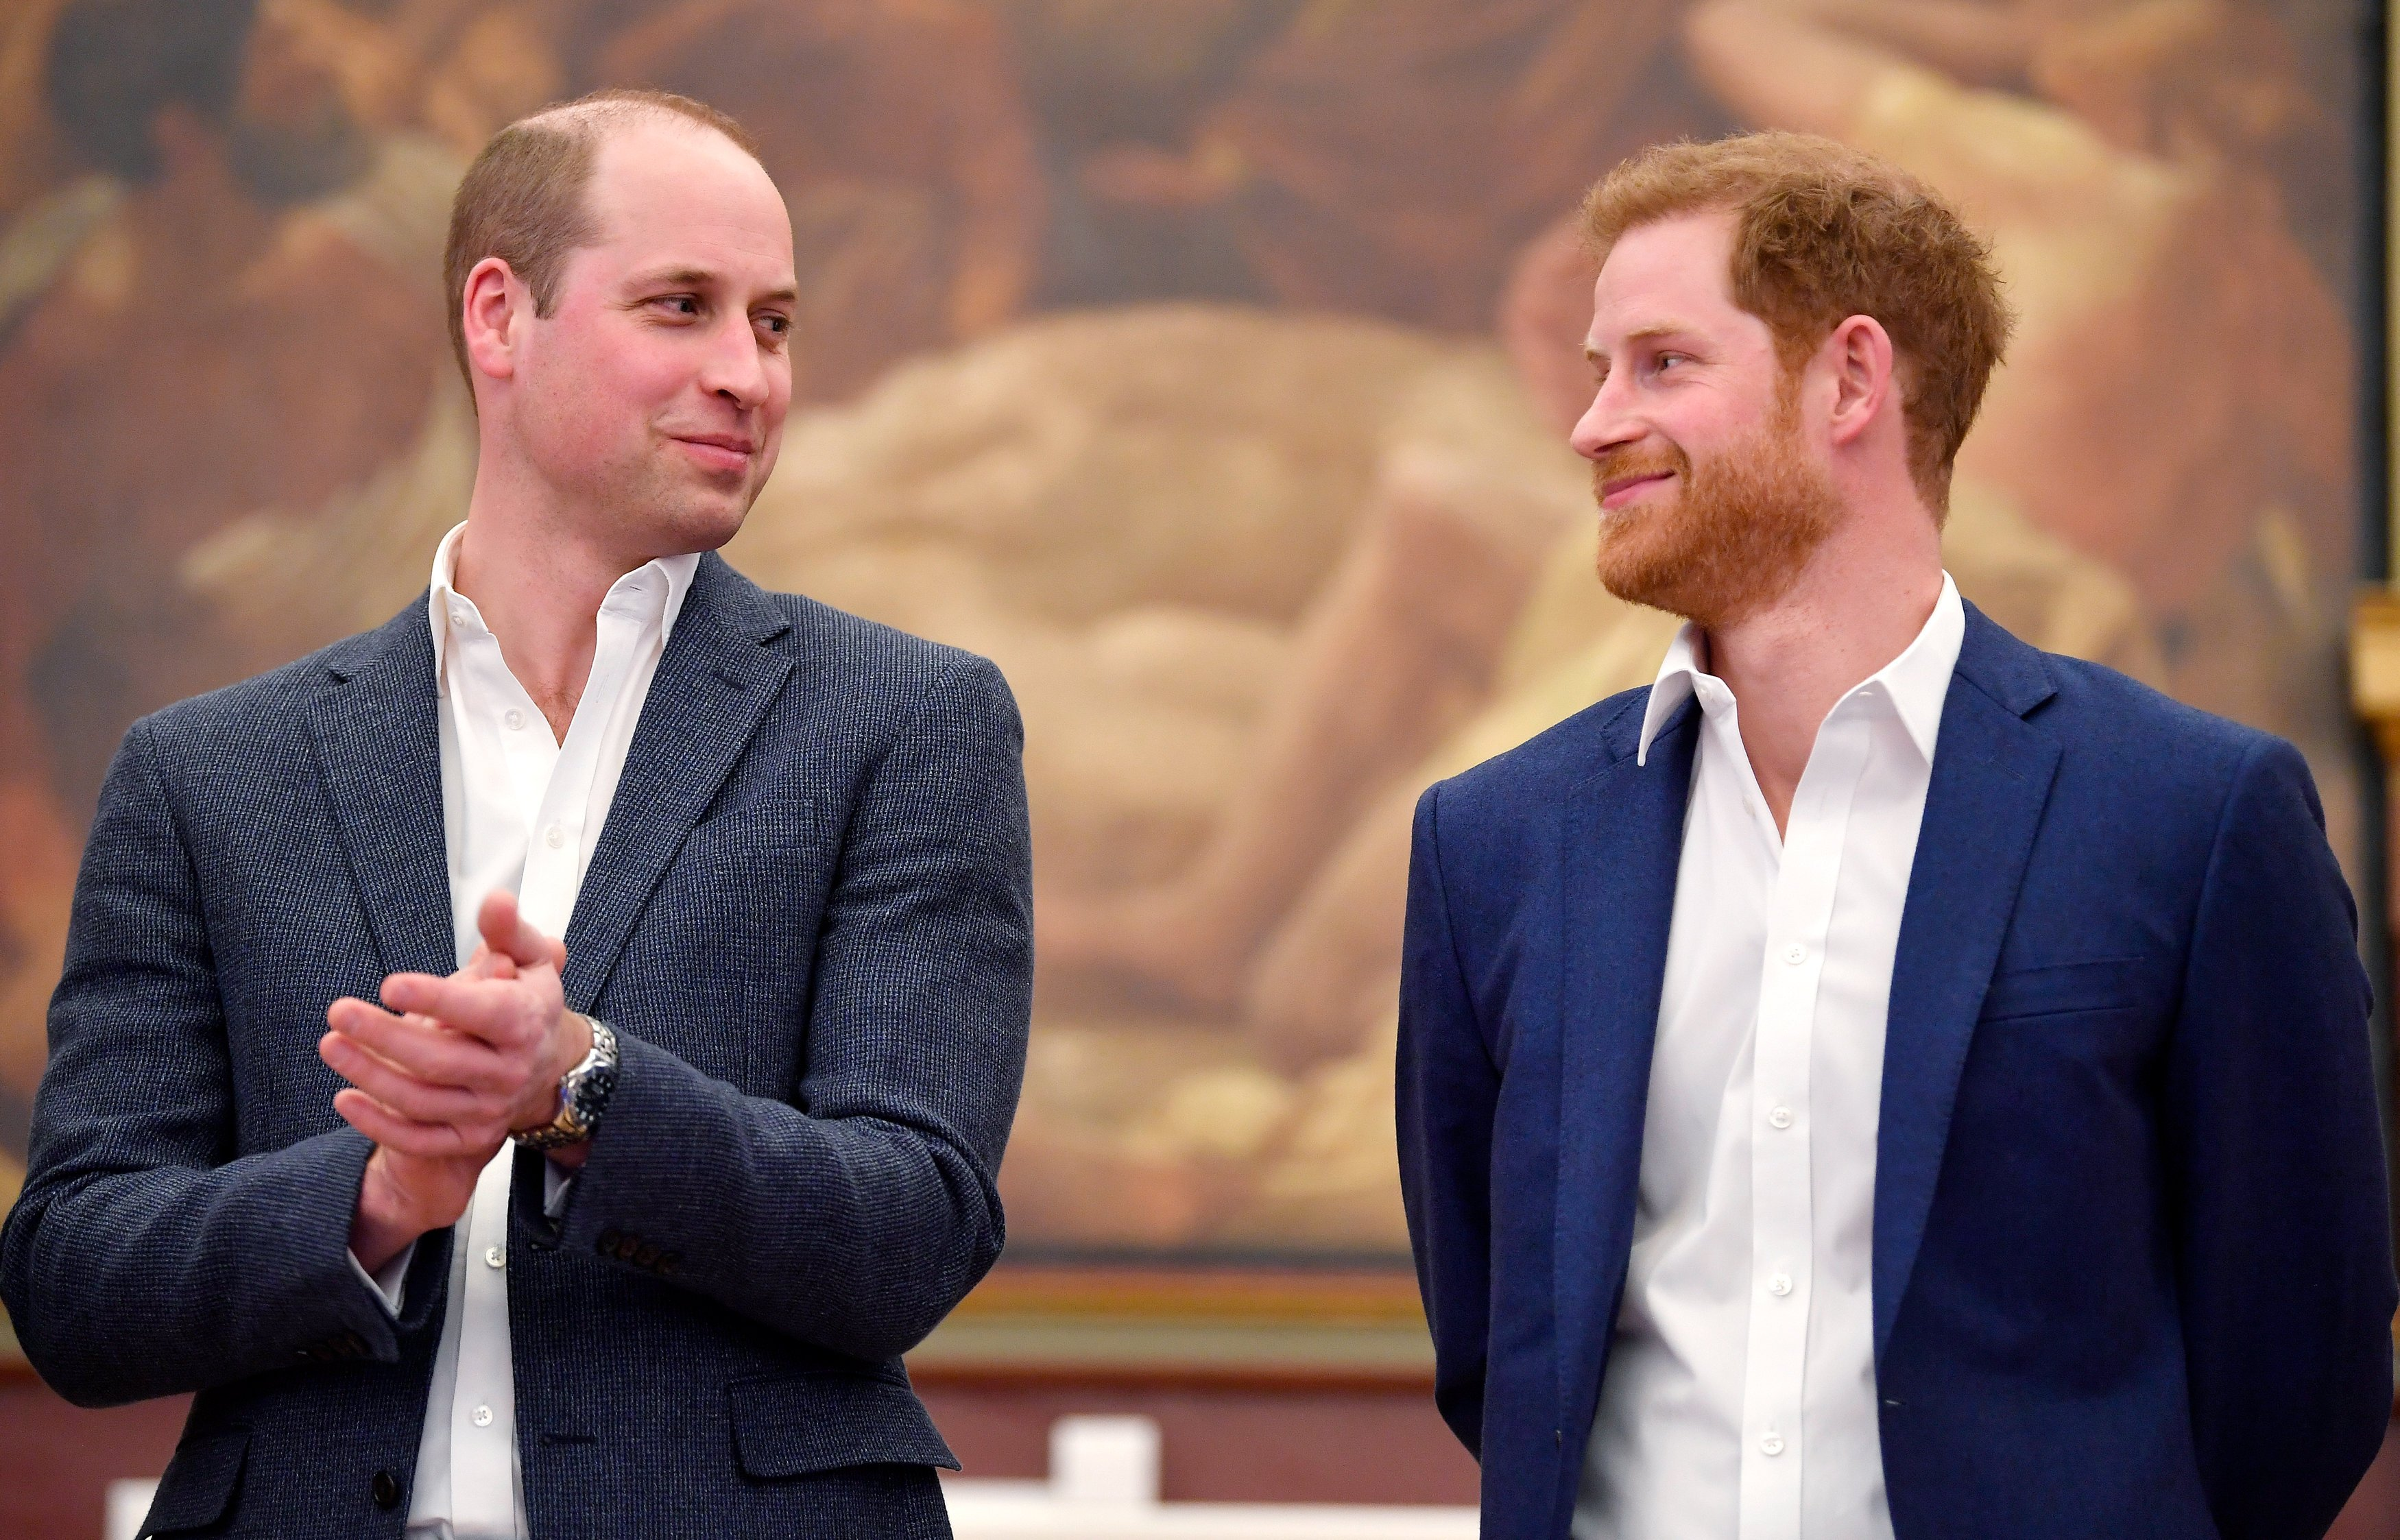 Image Credits: Getty Images / Toby Melville - WPA Pool   Prince William, Duke of Cambridge and Prince Harry attend the opening of the Greenhouse Sports Centre on April 26, 2018 in London, United Kingdom.